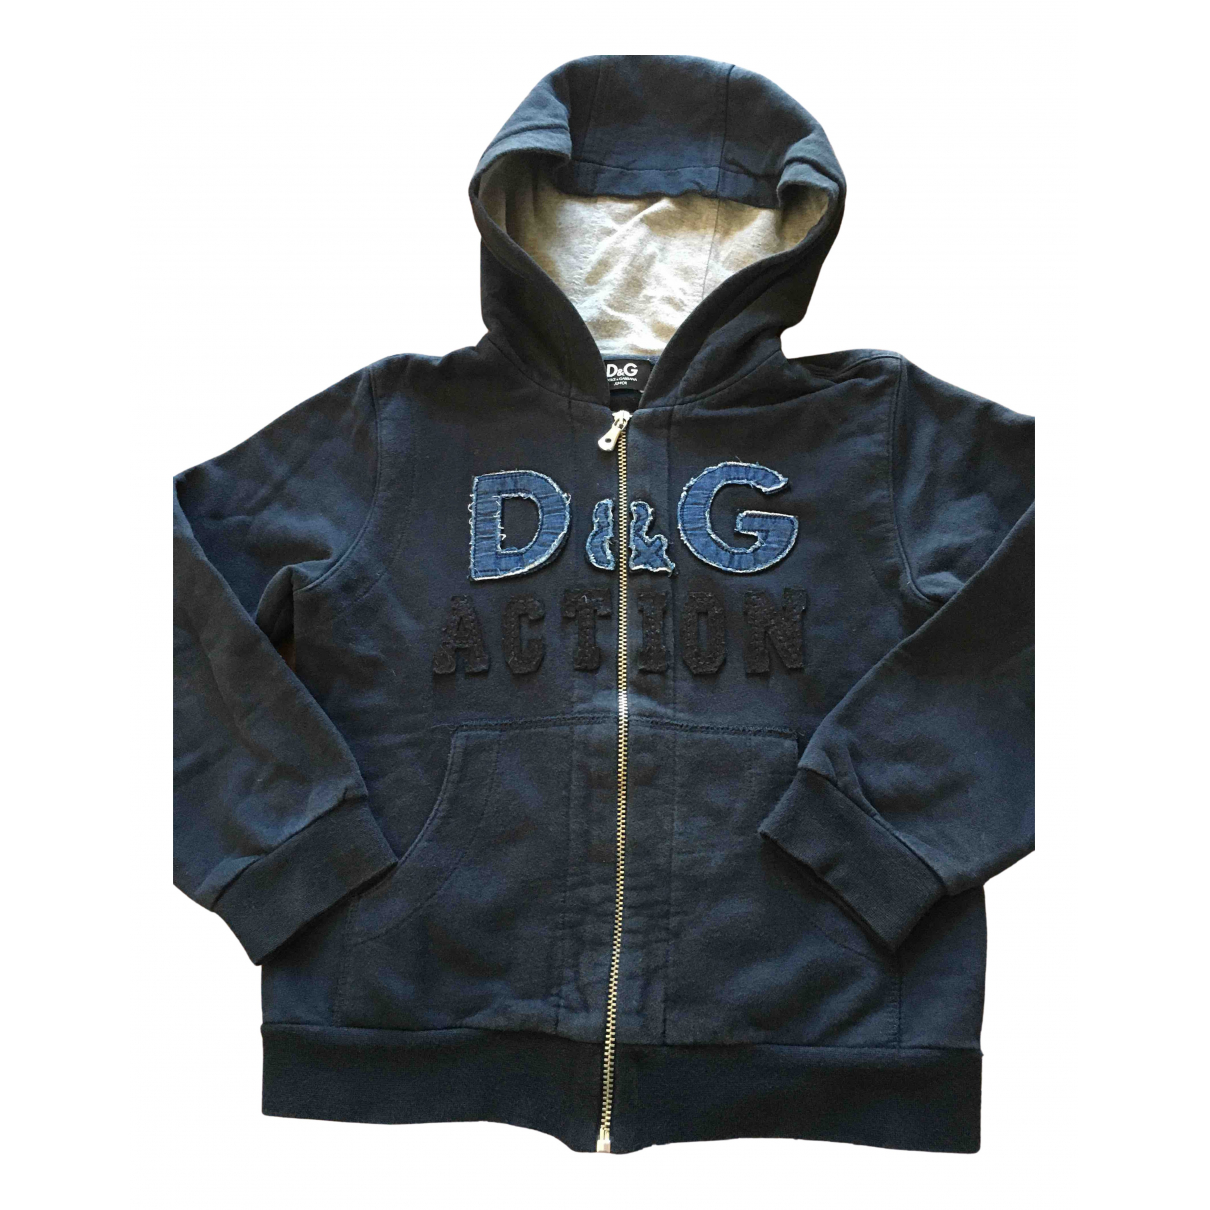 D&g N Blue Cotton Knitwear for Kids 5 years - up to 108cm FR